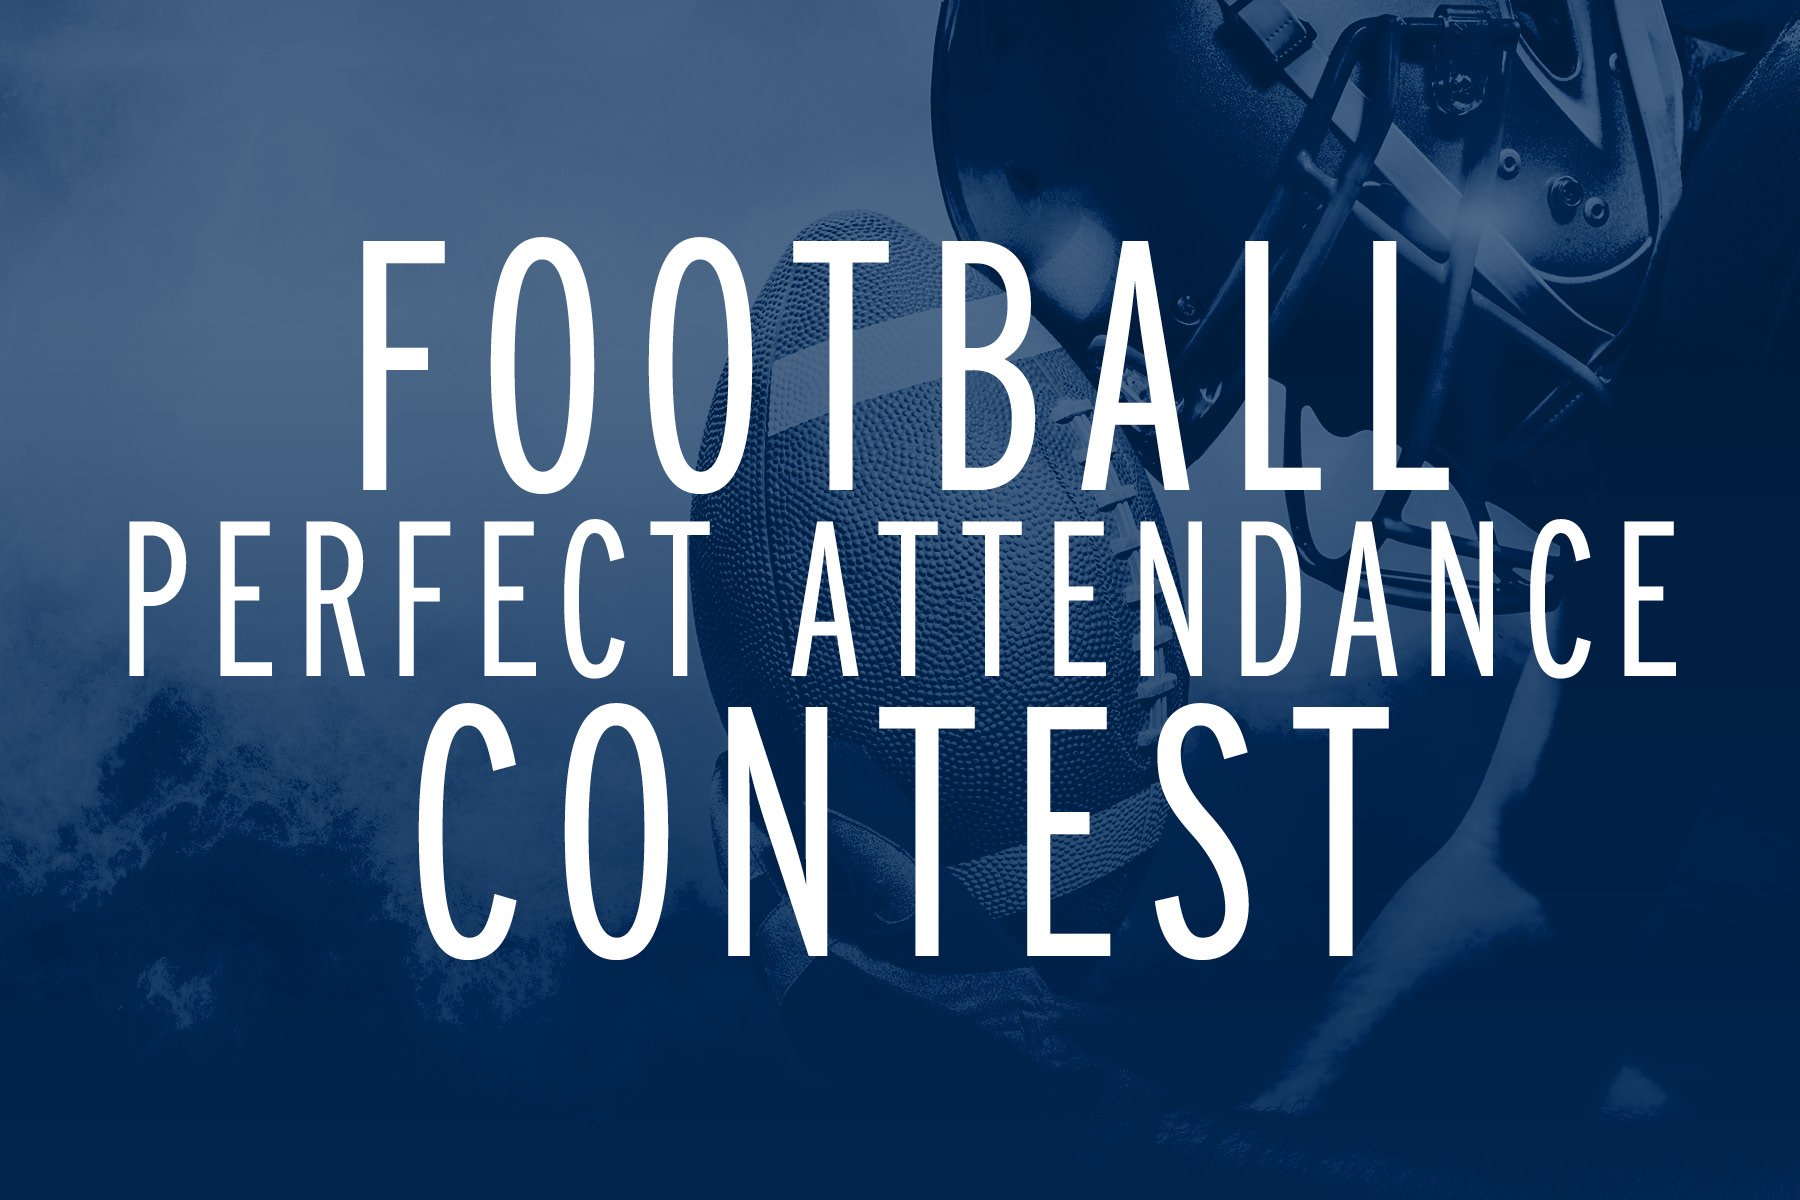 Football Perfect Attendance Contest